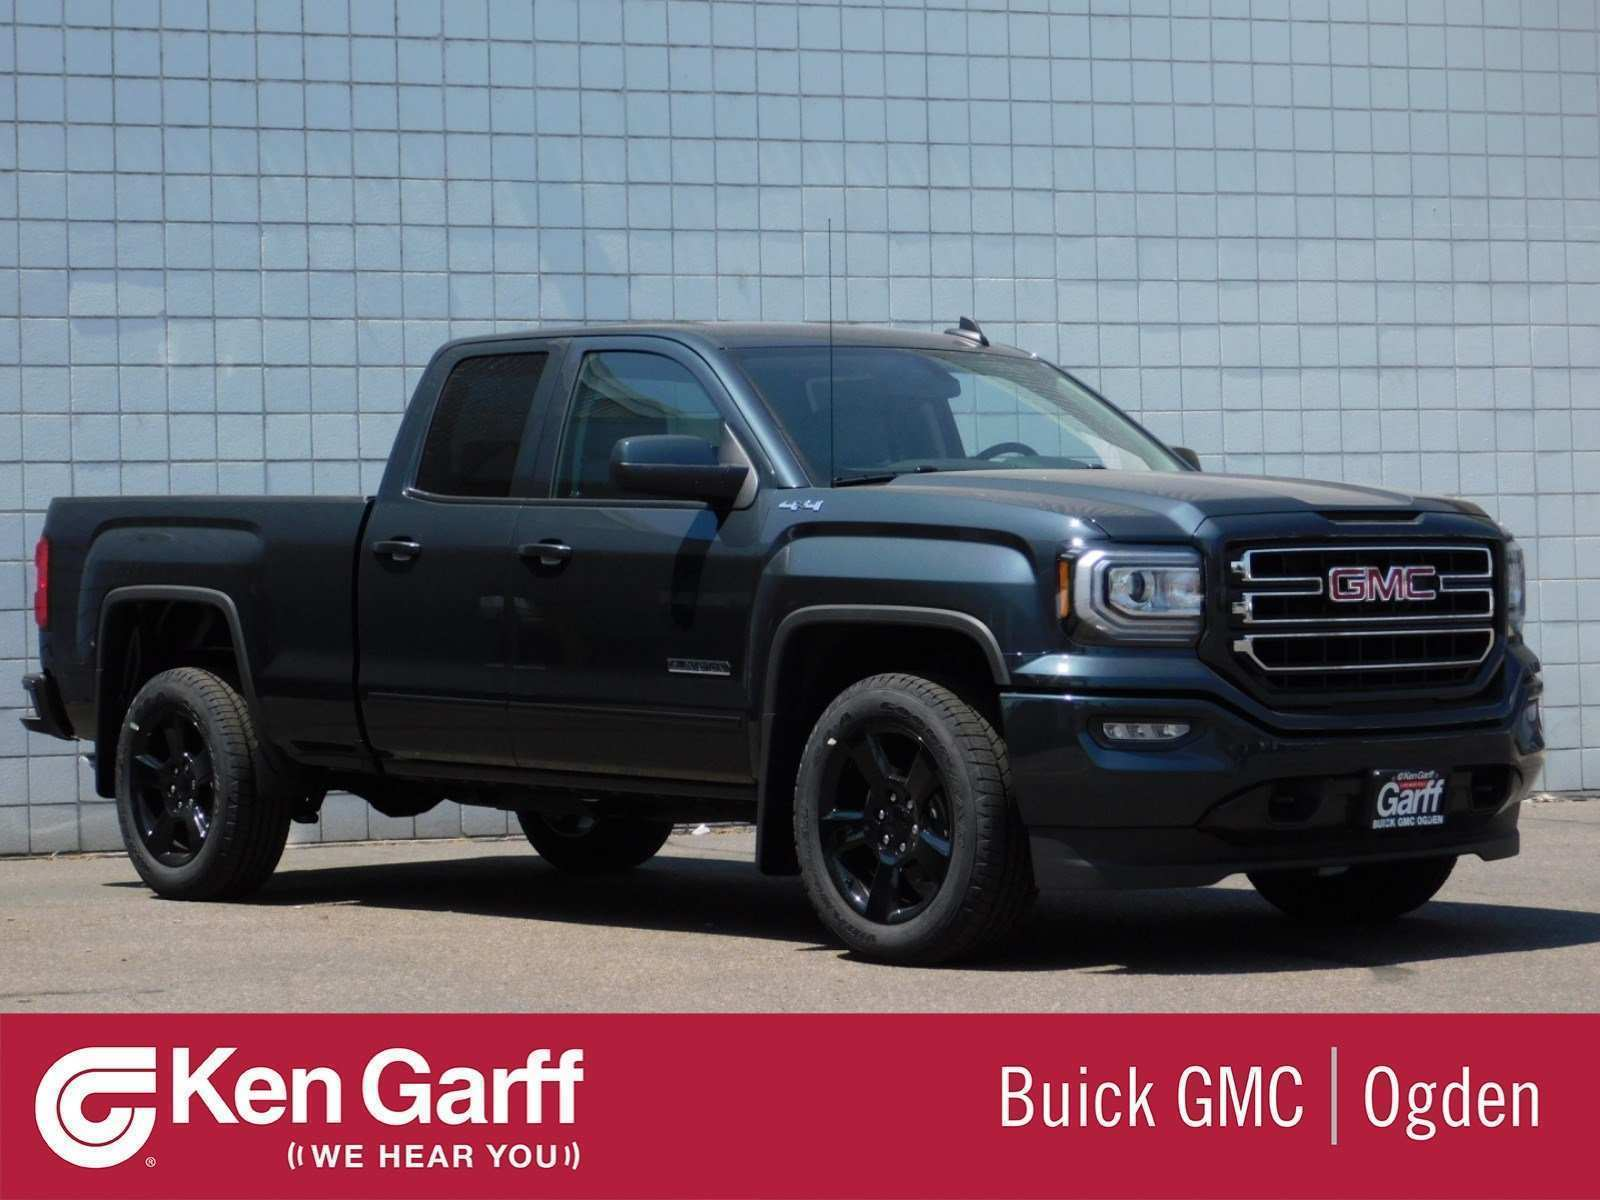 97 Best Review 2019 Gmc Pickup For Sale First Drive by 2019 Gmc Pickup For Sale